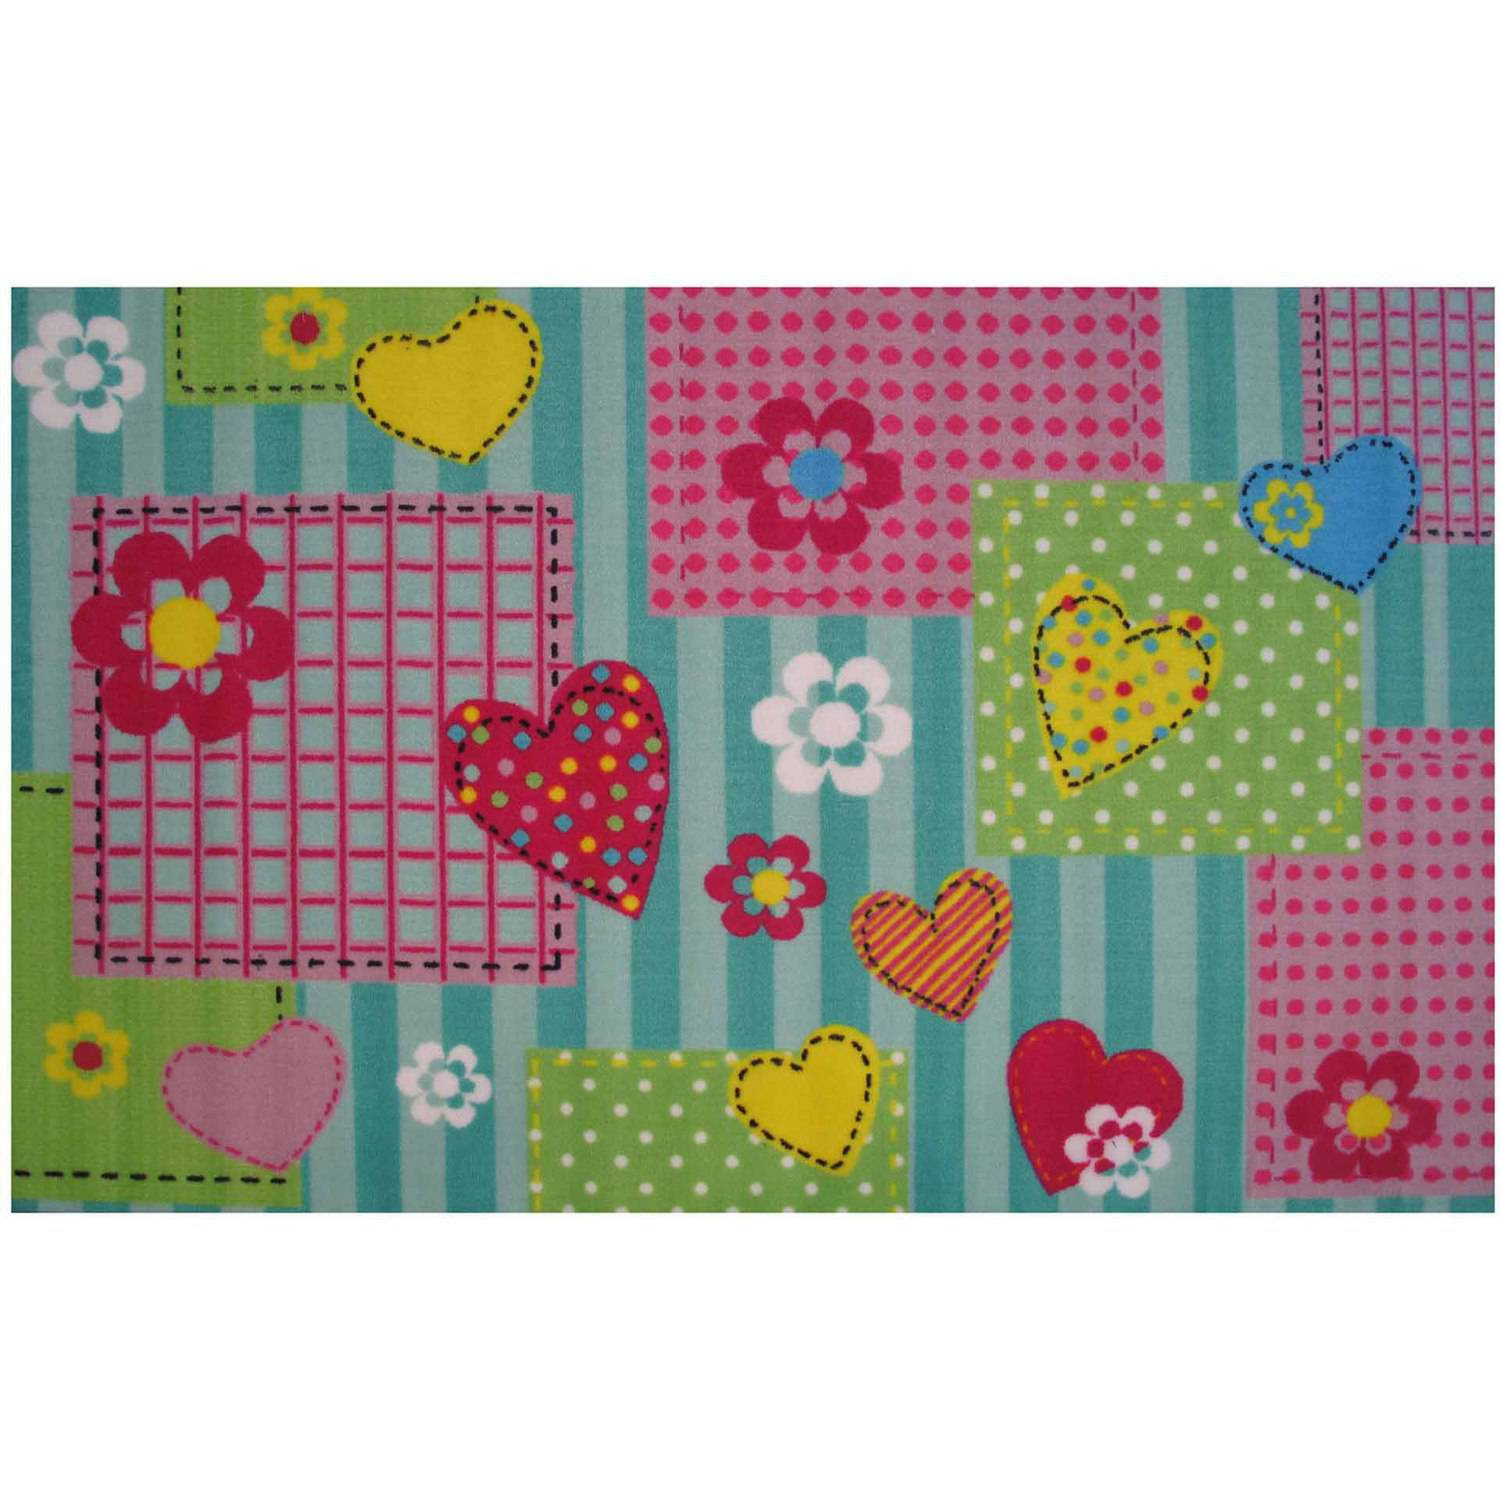 Fun Rugs Hearts and Flowers Kids Rugs